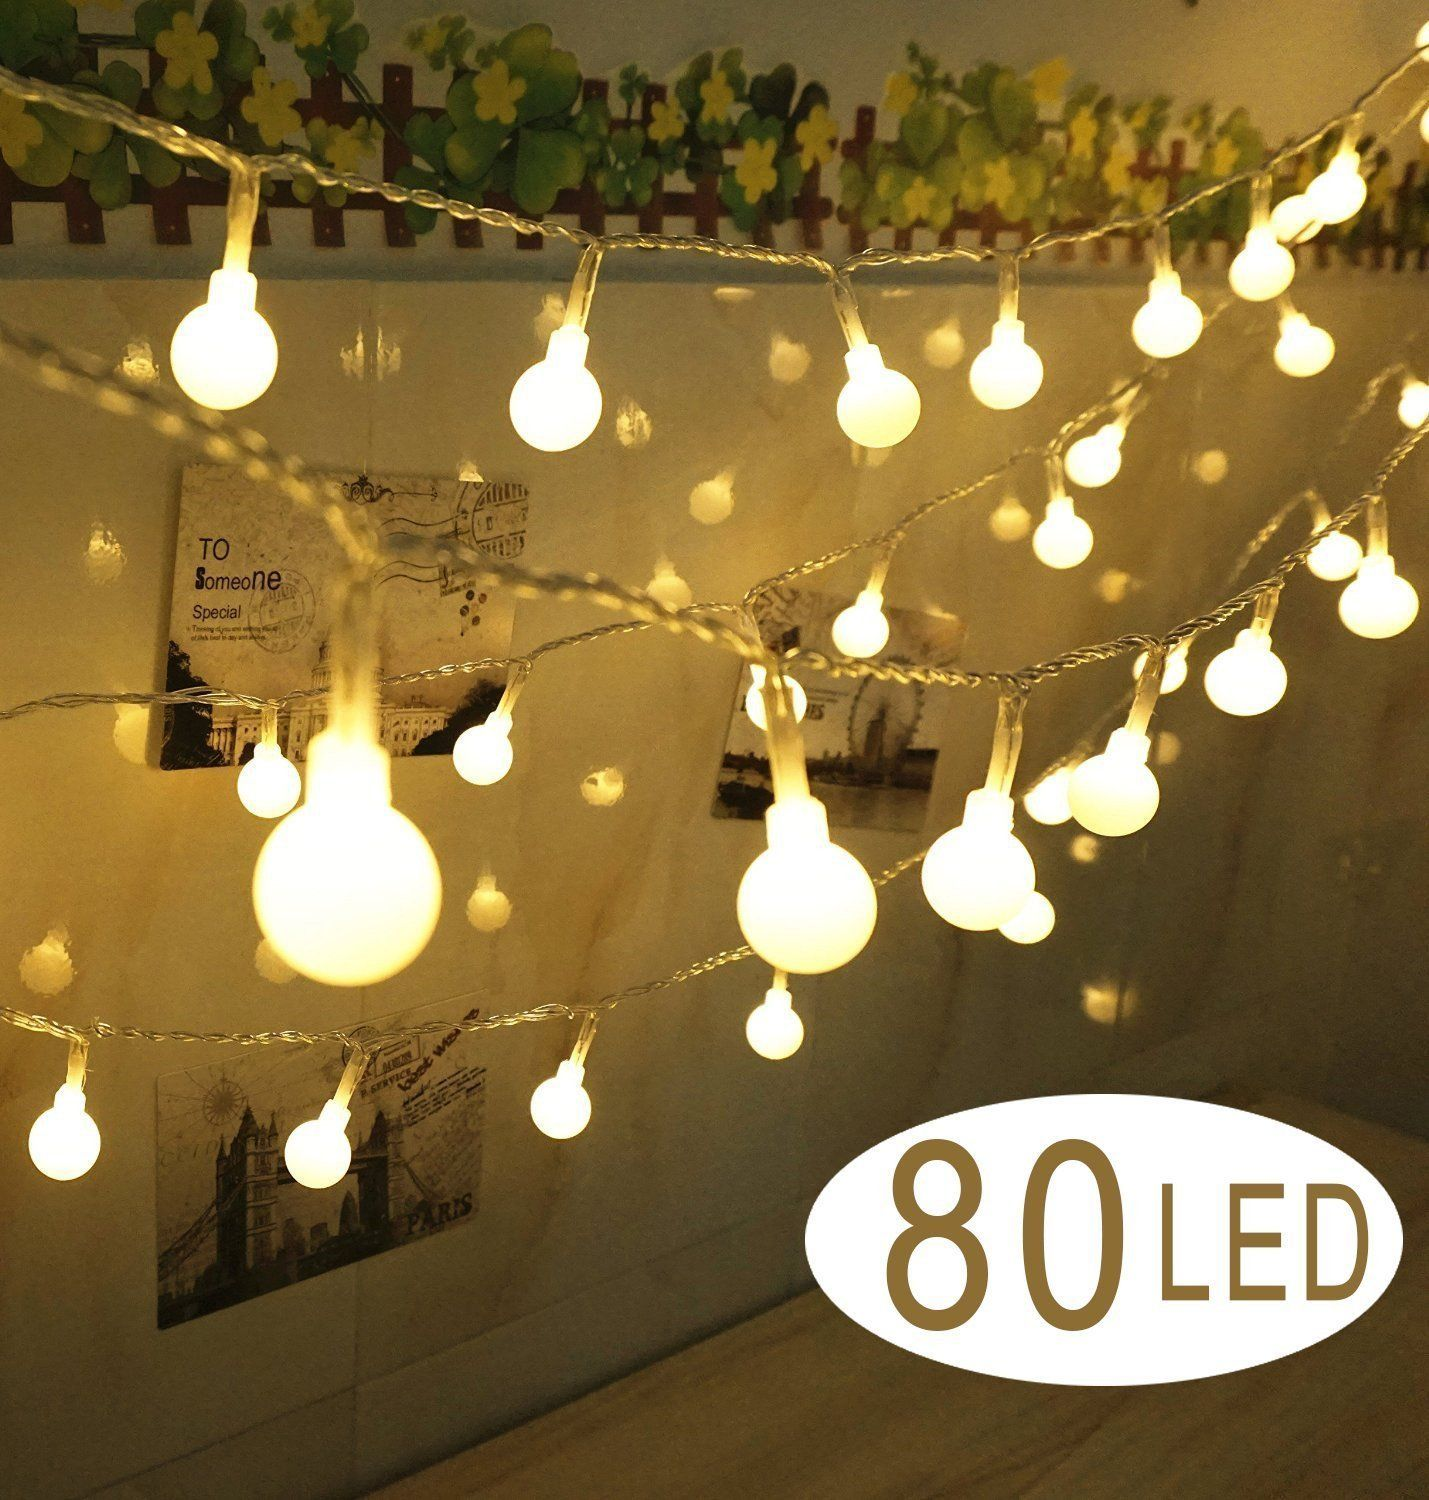 Guirlande Lumineuse Terrasse Guirlande Poutres Terrasse Action Outdoor Pinterest